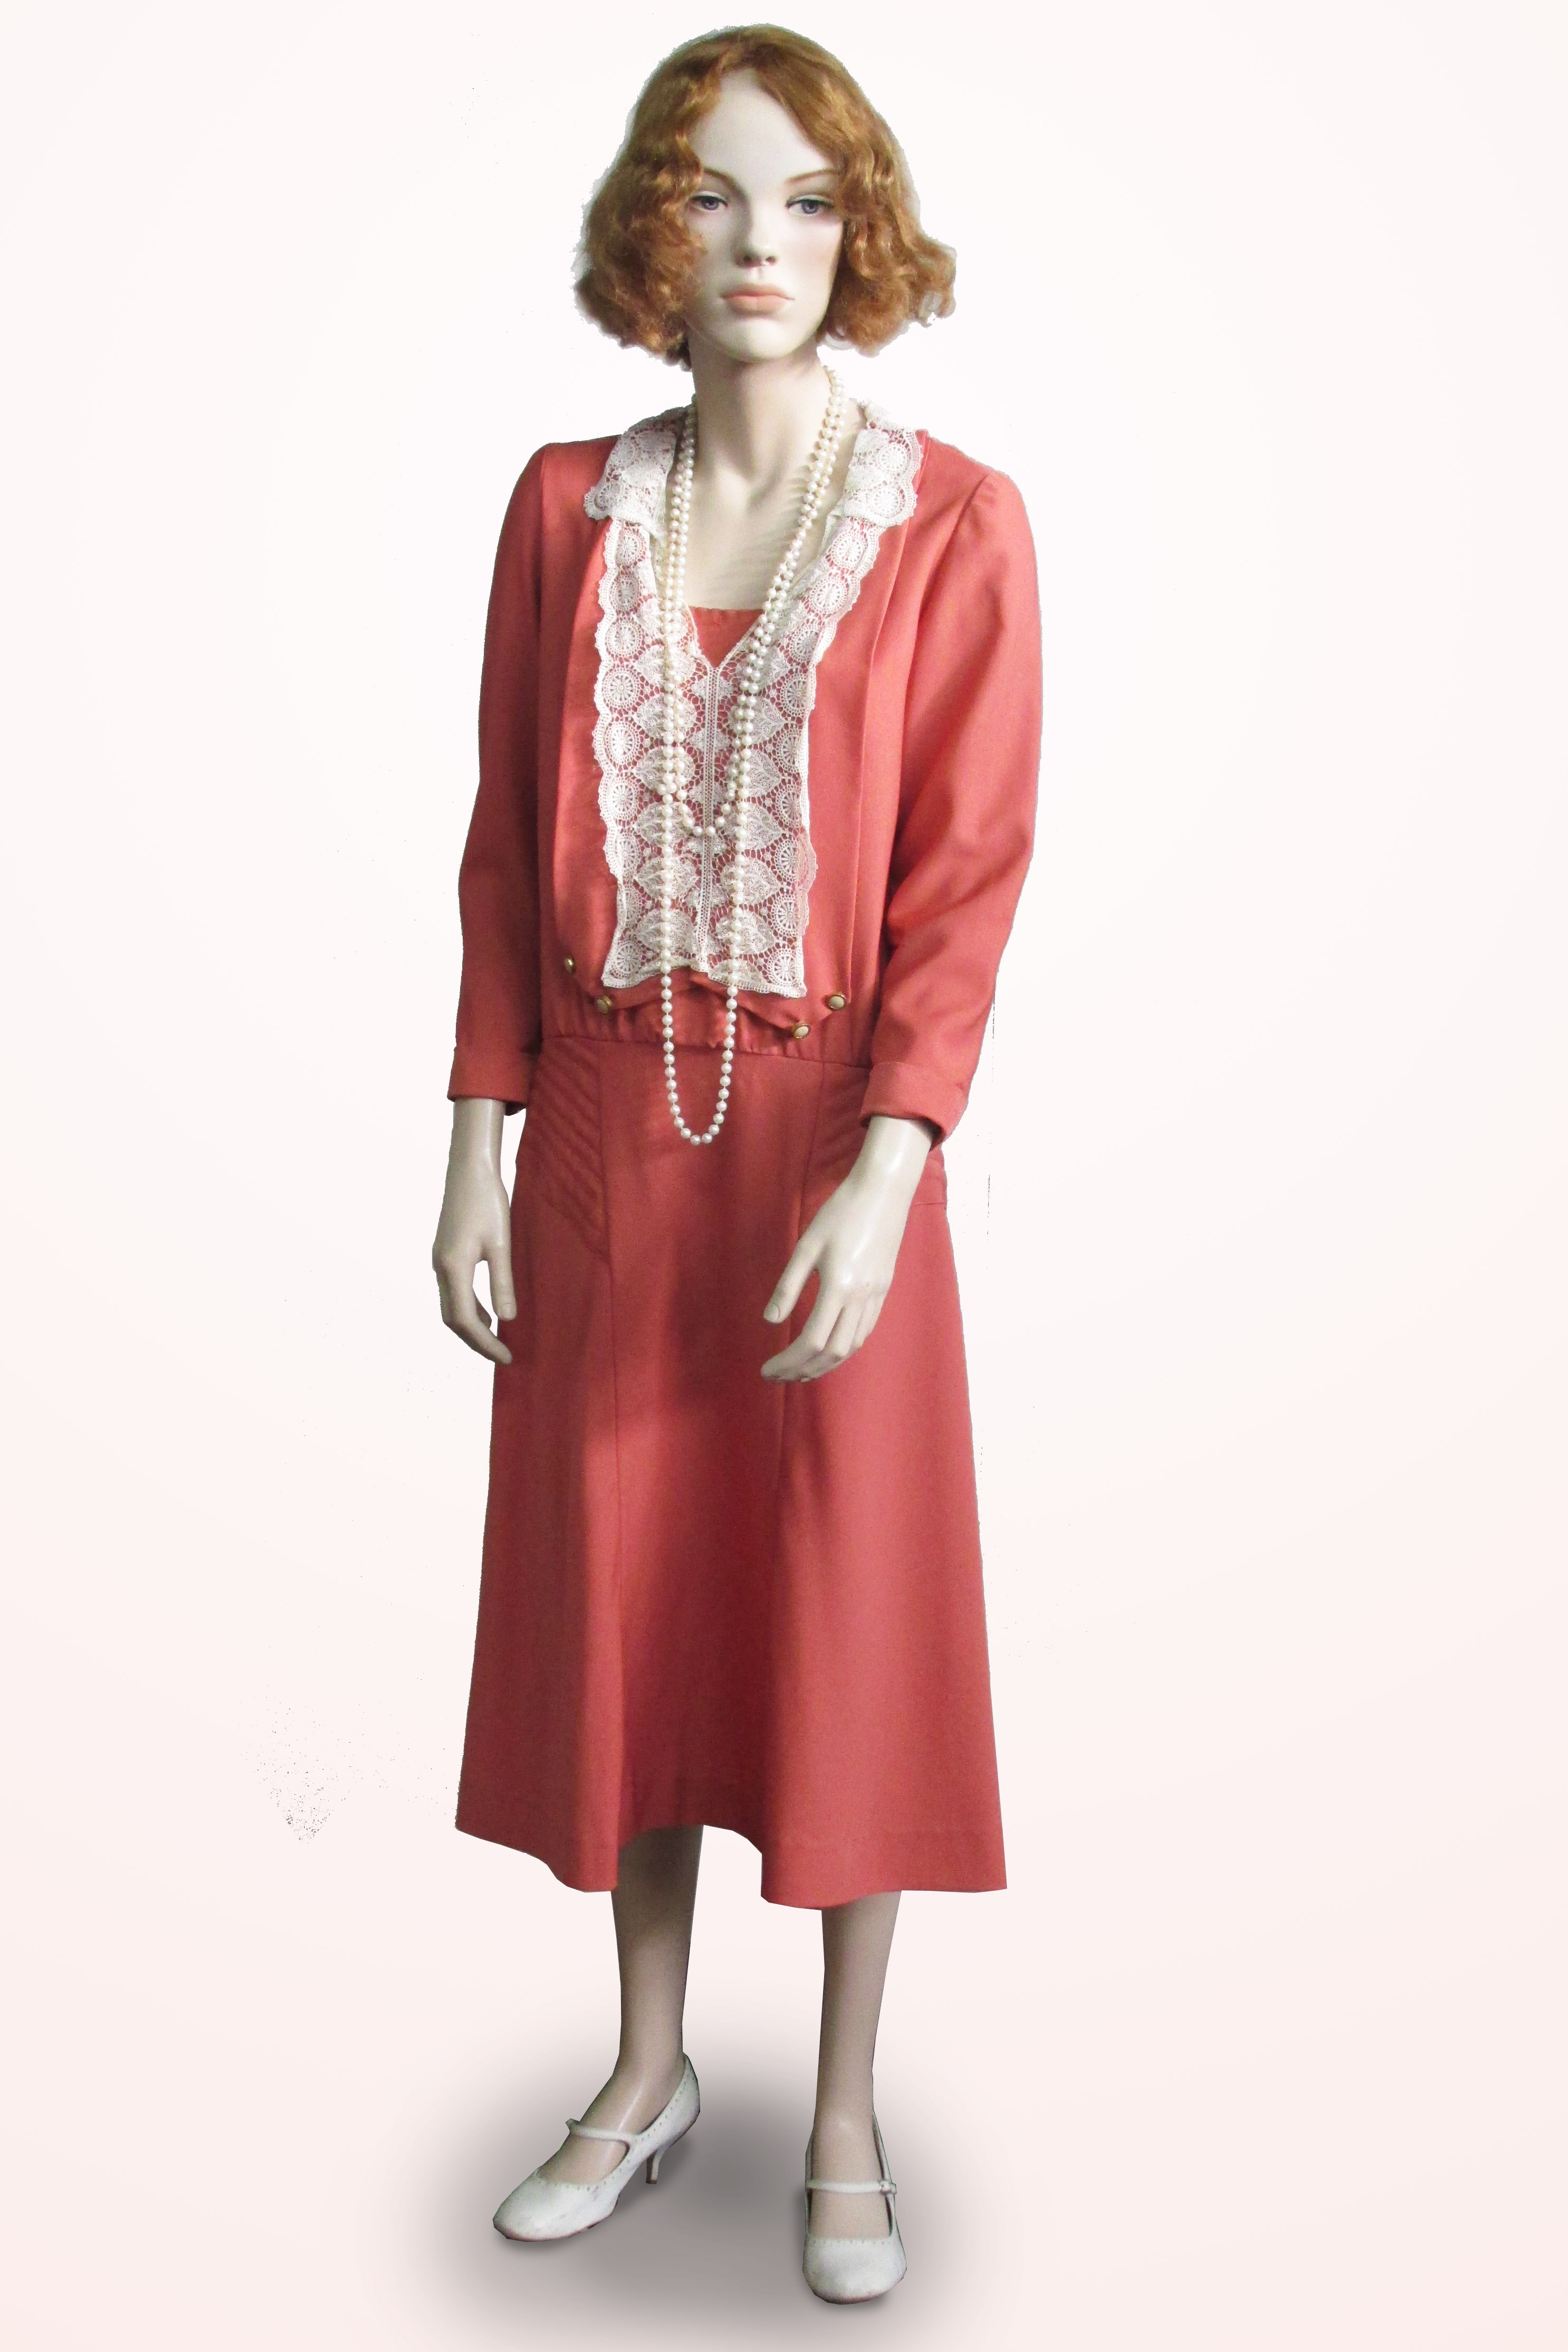 Dress Rustic Orange with Lace Front 1930s